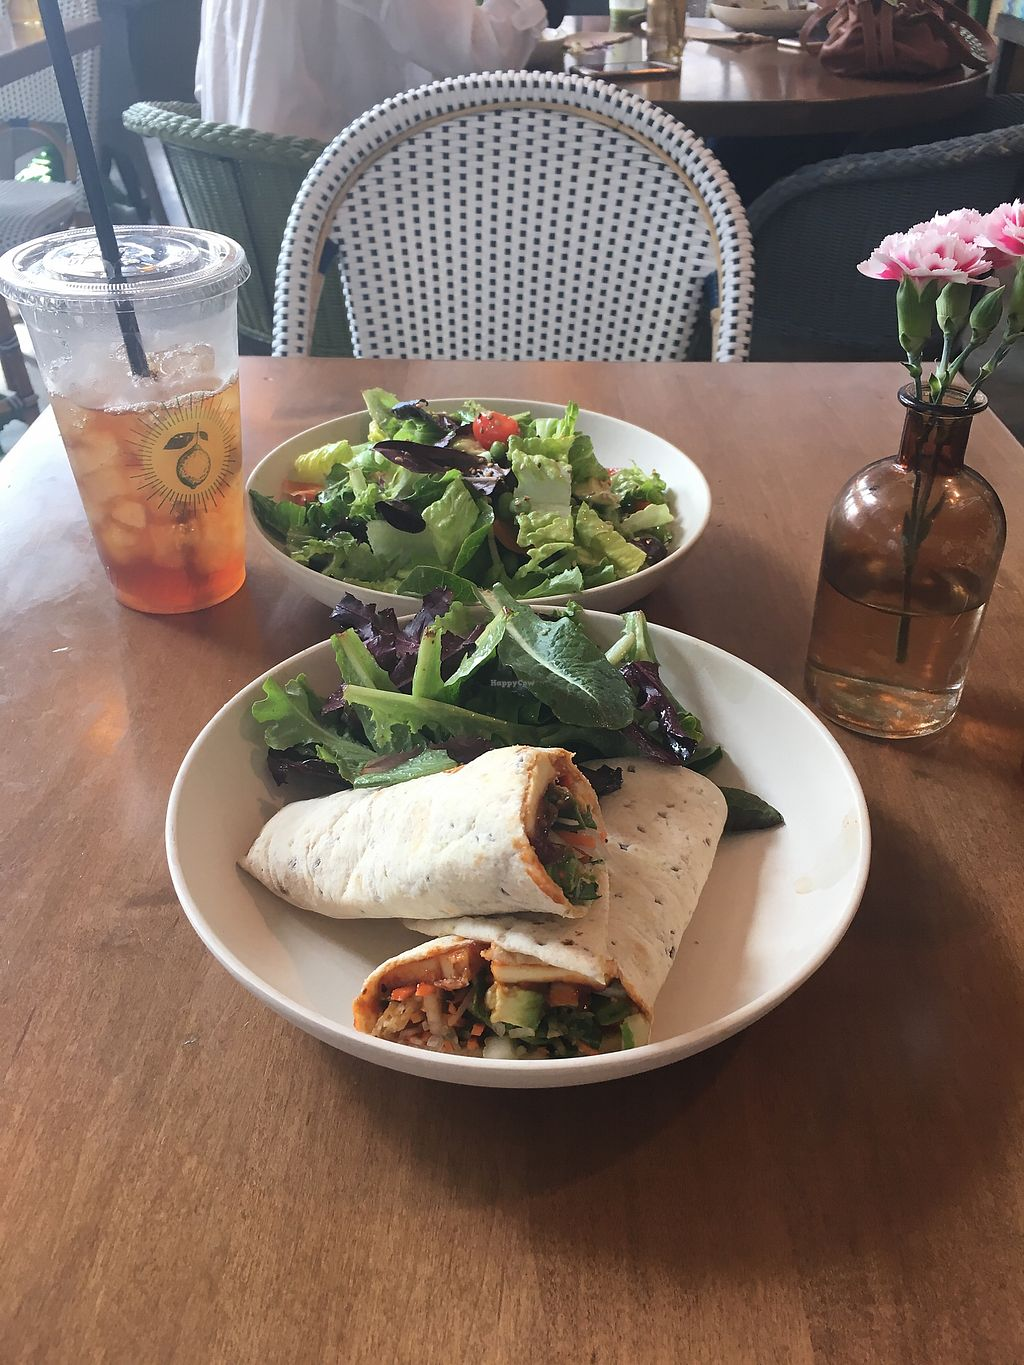 """Photo of Flower Child - Downtown  by <a href=""""/members/profile/giant%20bunnie"""">giant bunnie</a> <br/>Food is clean and refreshing, just like the atmosphere! <br/> March 24, 2018  - <a href='/contact/abuse/image/109440/375526'>Report</a>"""